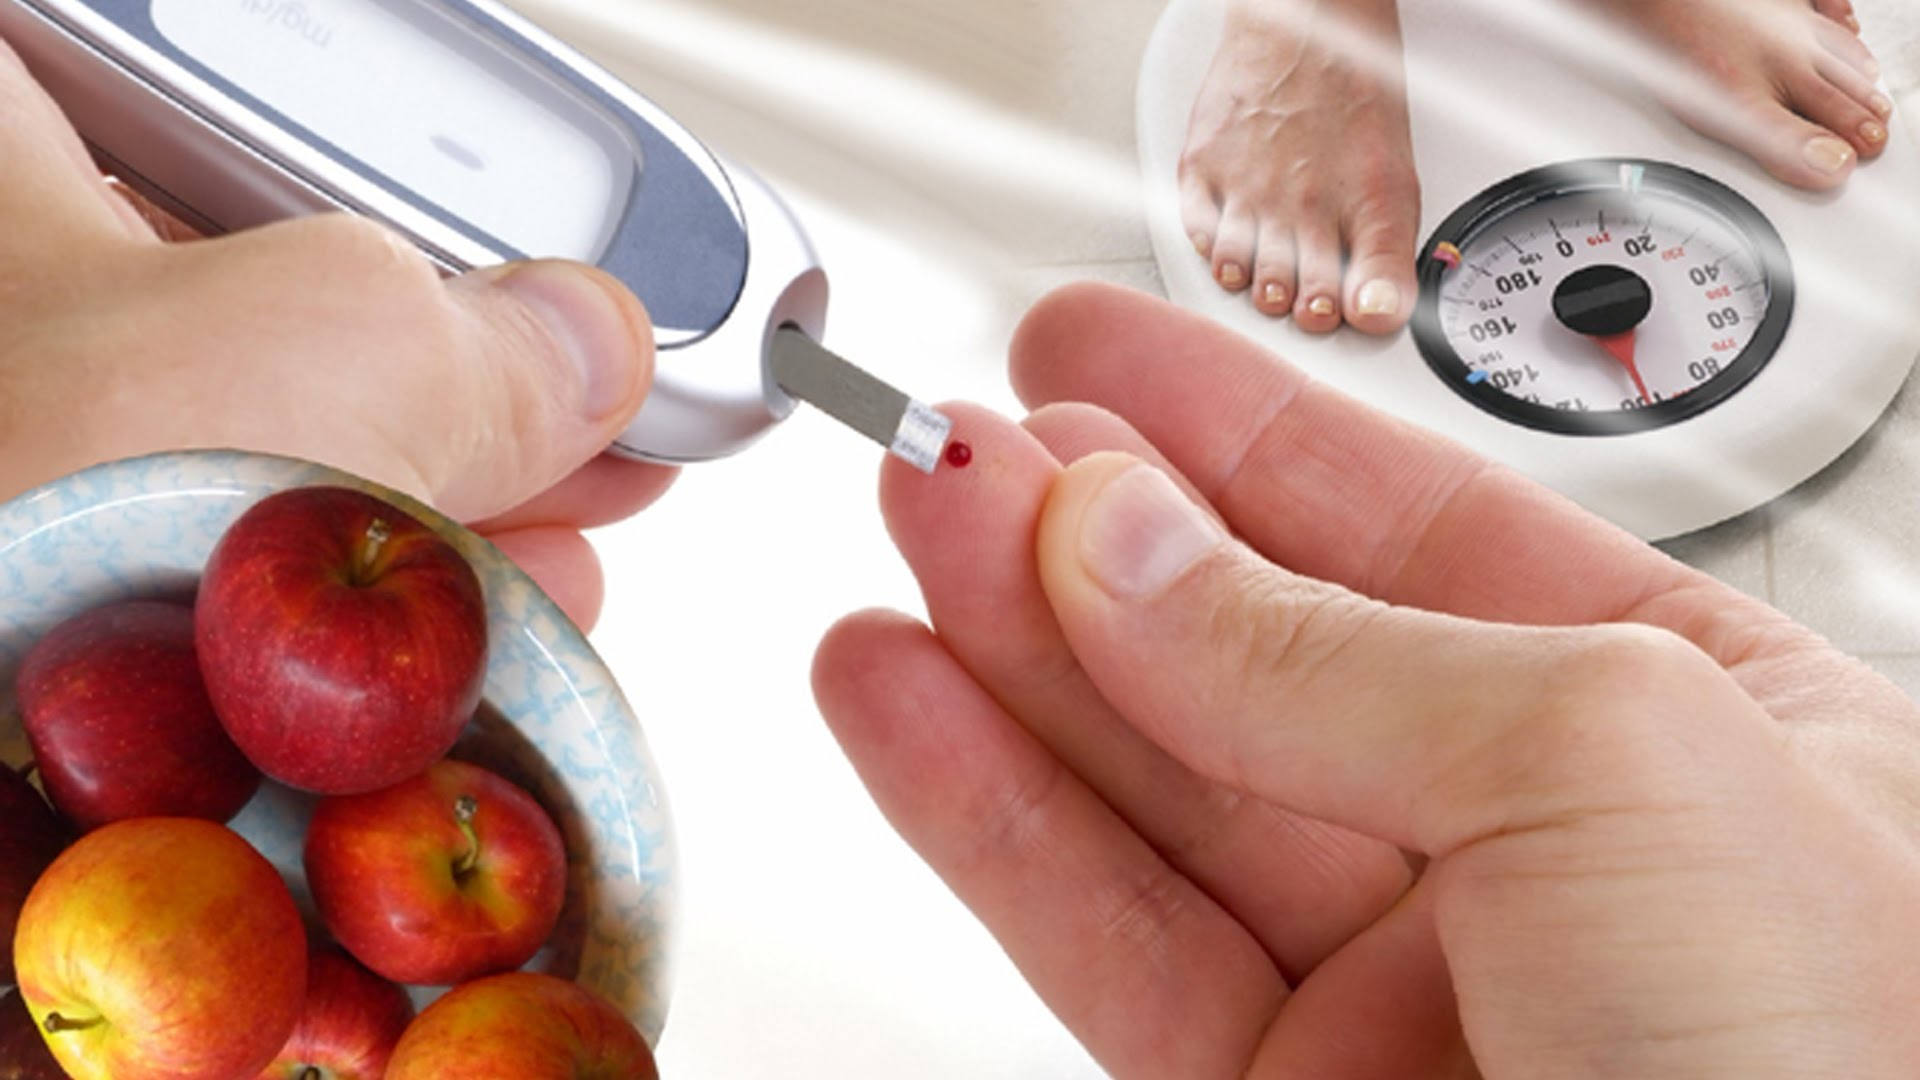 Artificial pancreas to help diabetics control blood sugar levels